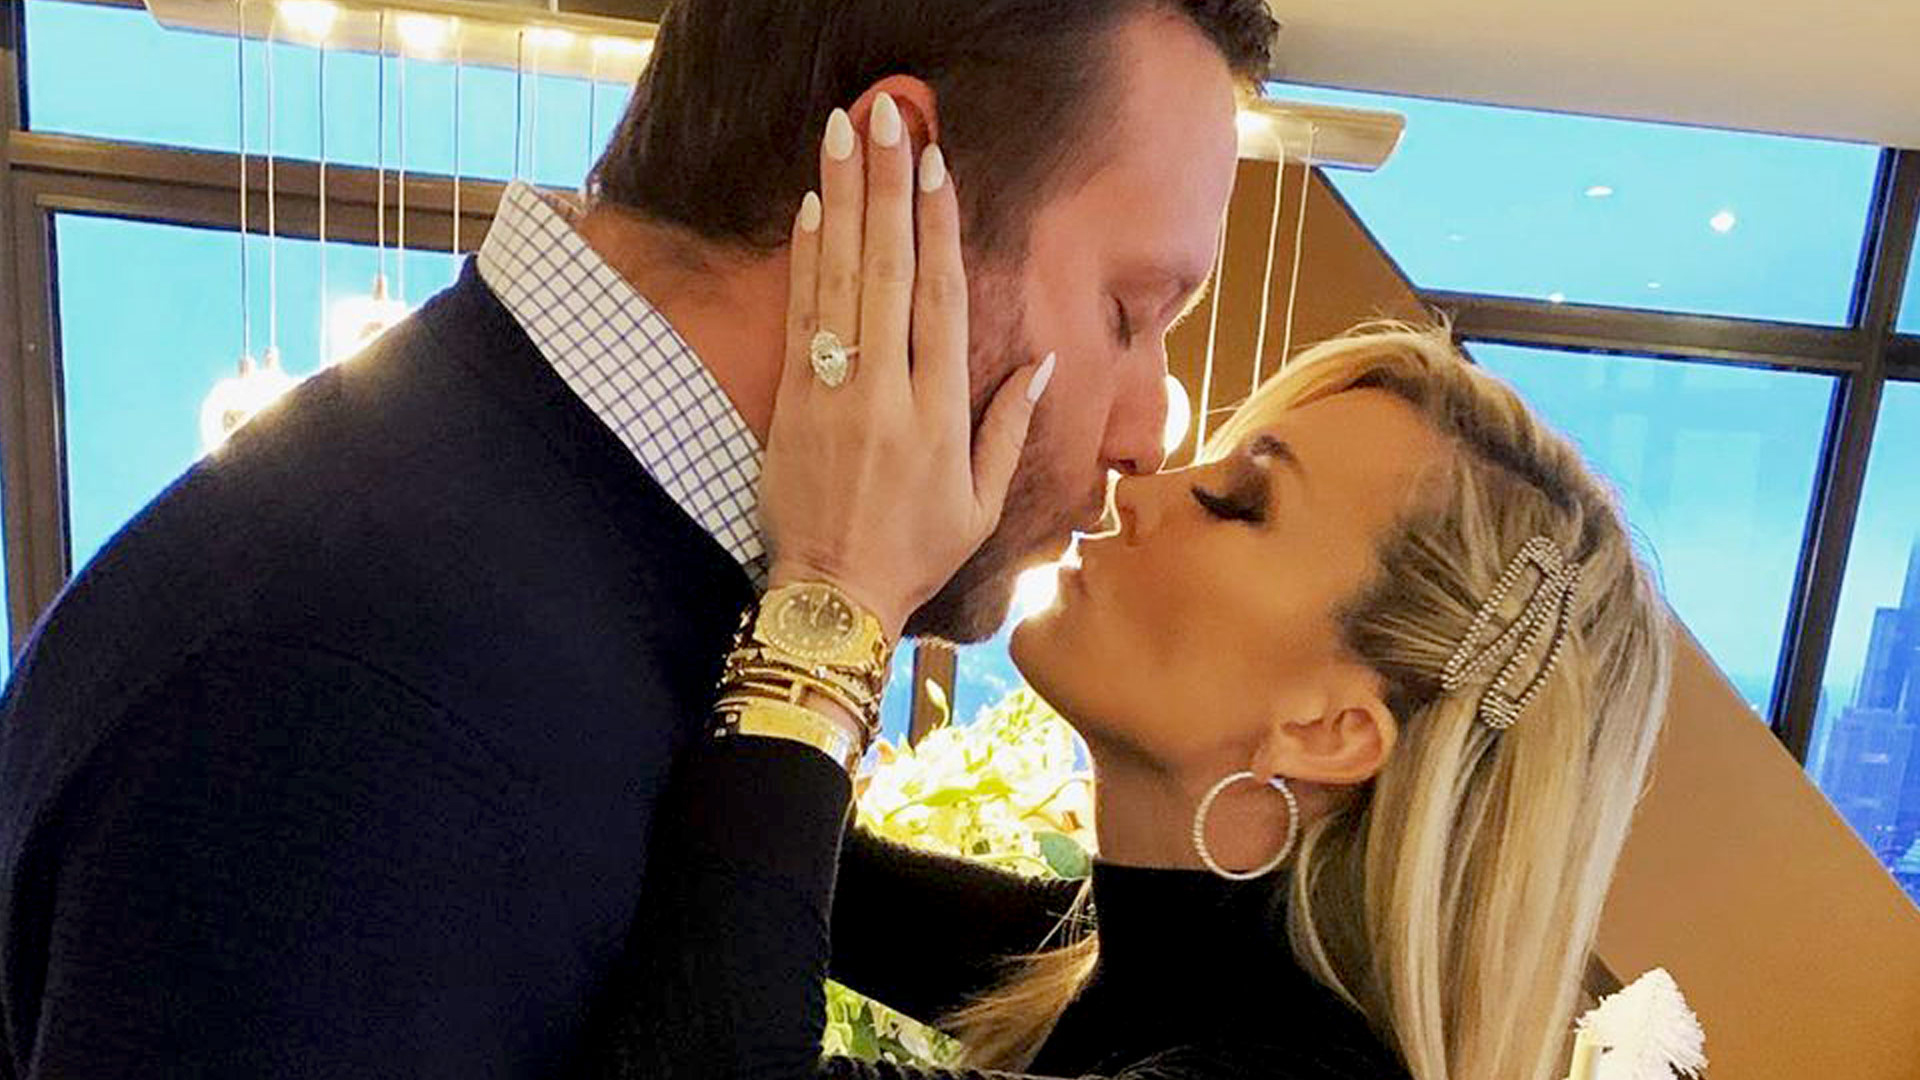 Tinsley Mortimer Reveals All About Her Life in Chicago with Scott